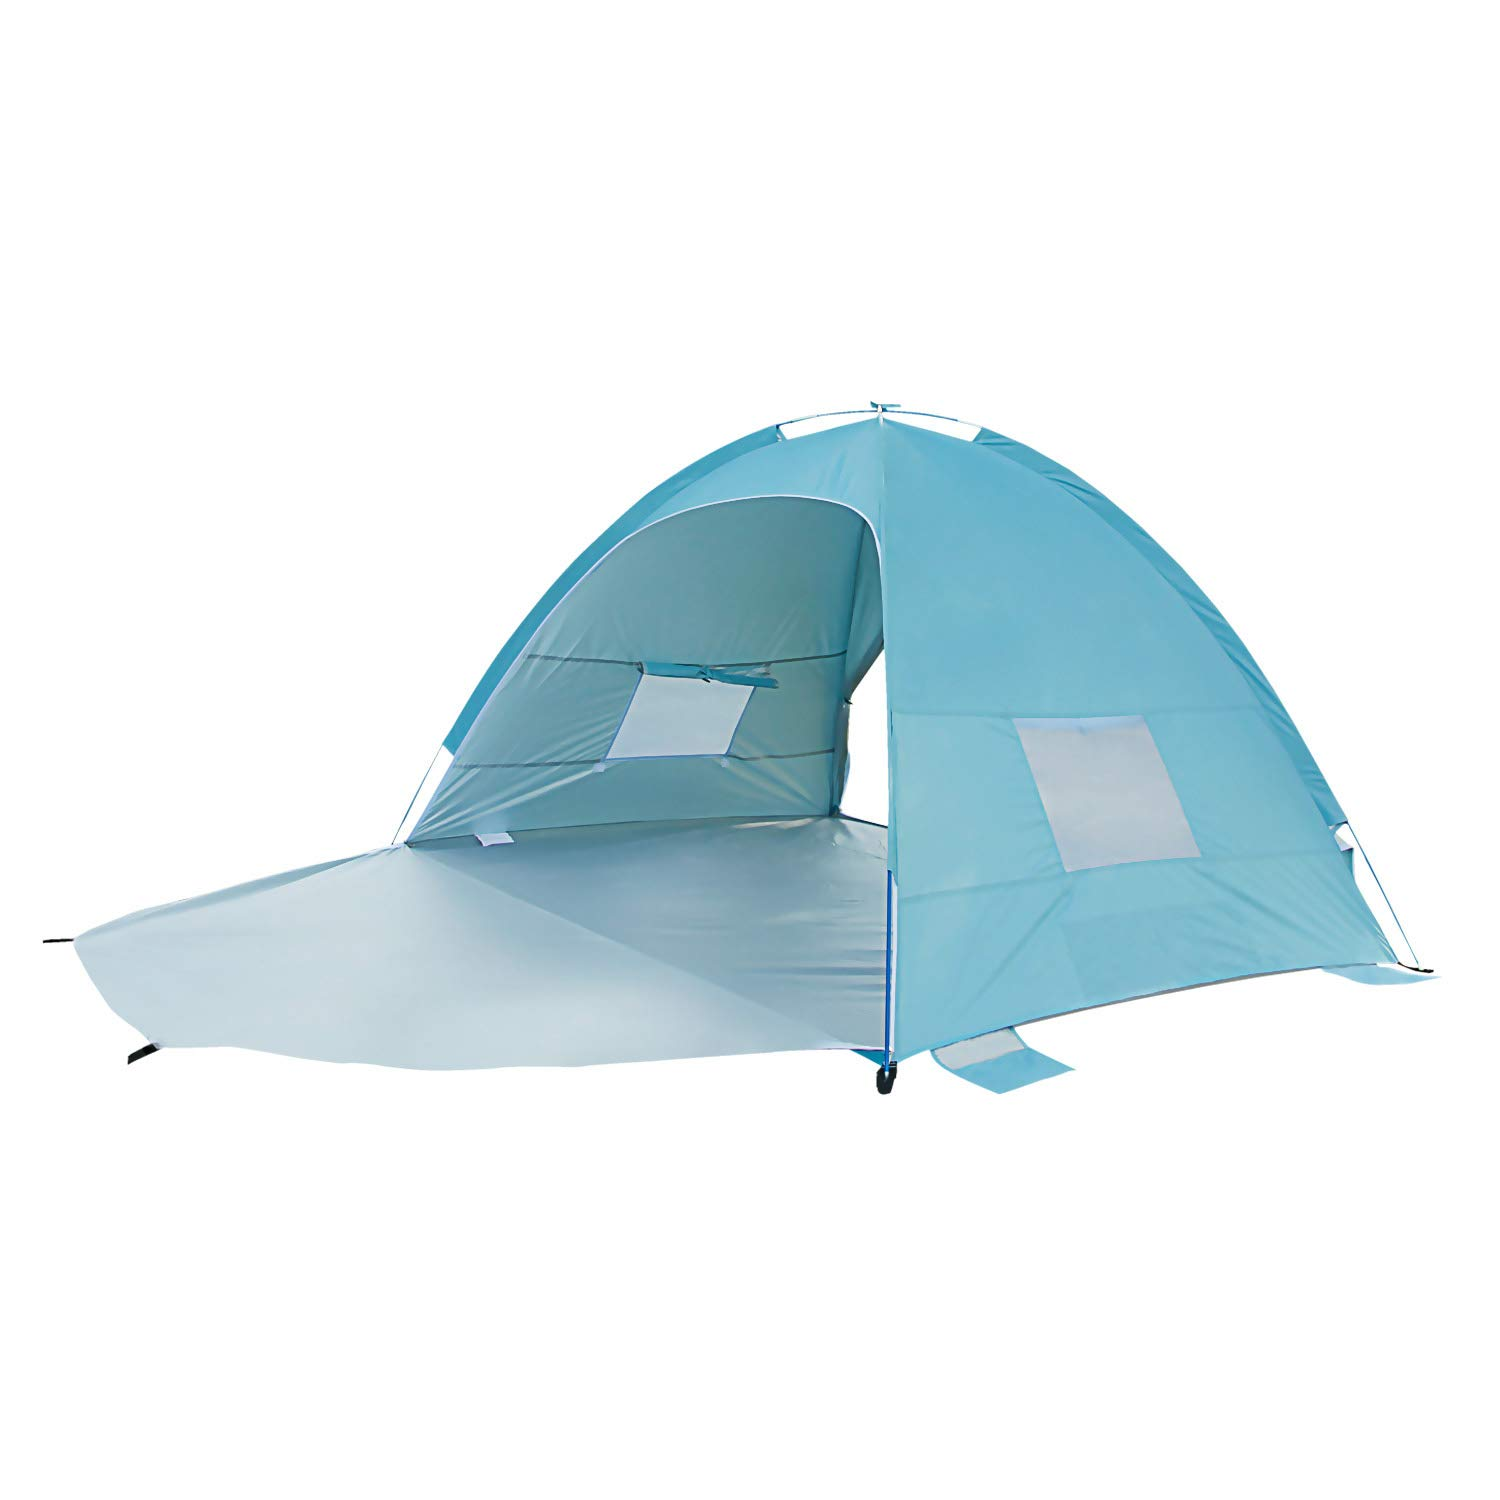 Sun-shelter Portable Beach Tent 2 or 3 Person Instant Camping Tent with UV Protection Beach Shade for Outdoor Activities (Light Blue) by Sun-shelter